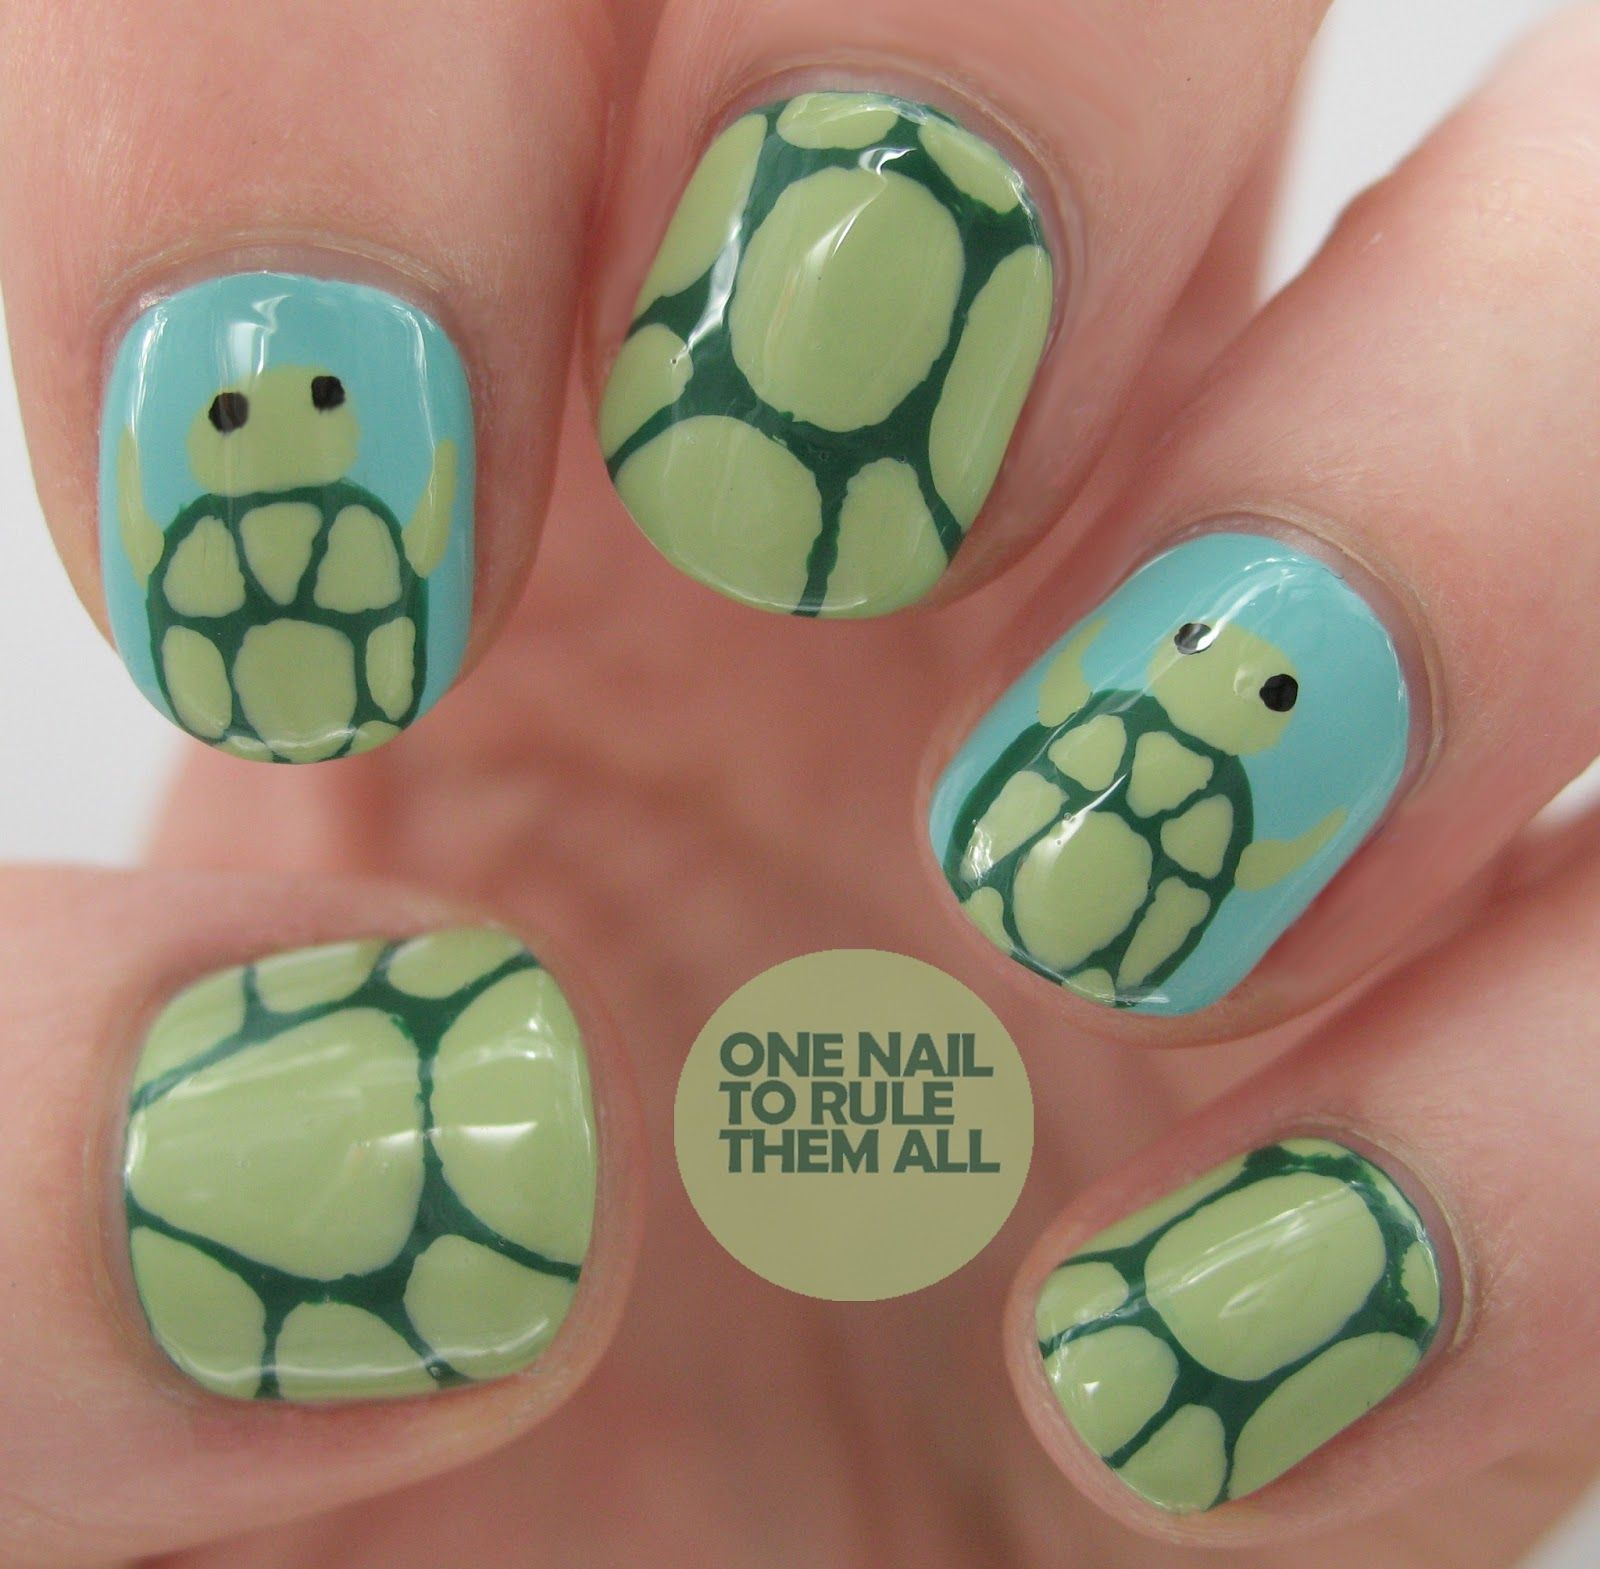 One Nail To Rule Them All Turtle Nail Nails Nailart Turtle Nail Art Turtle Nails Nail Art